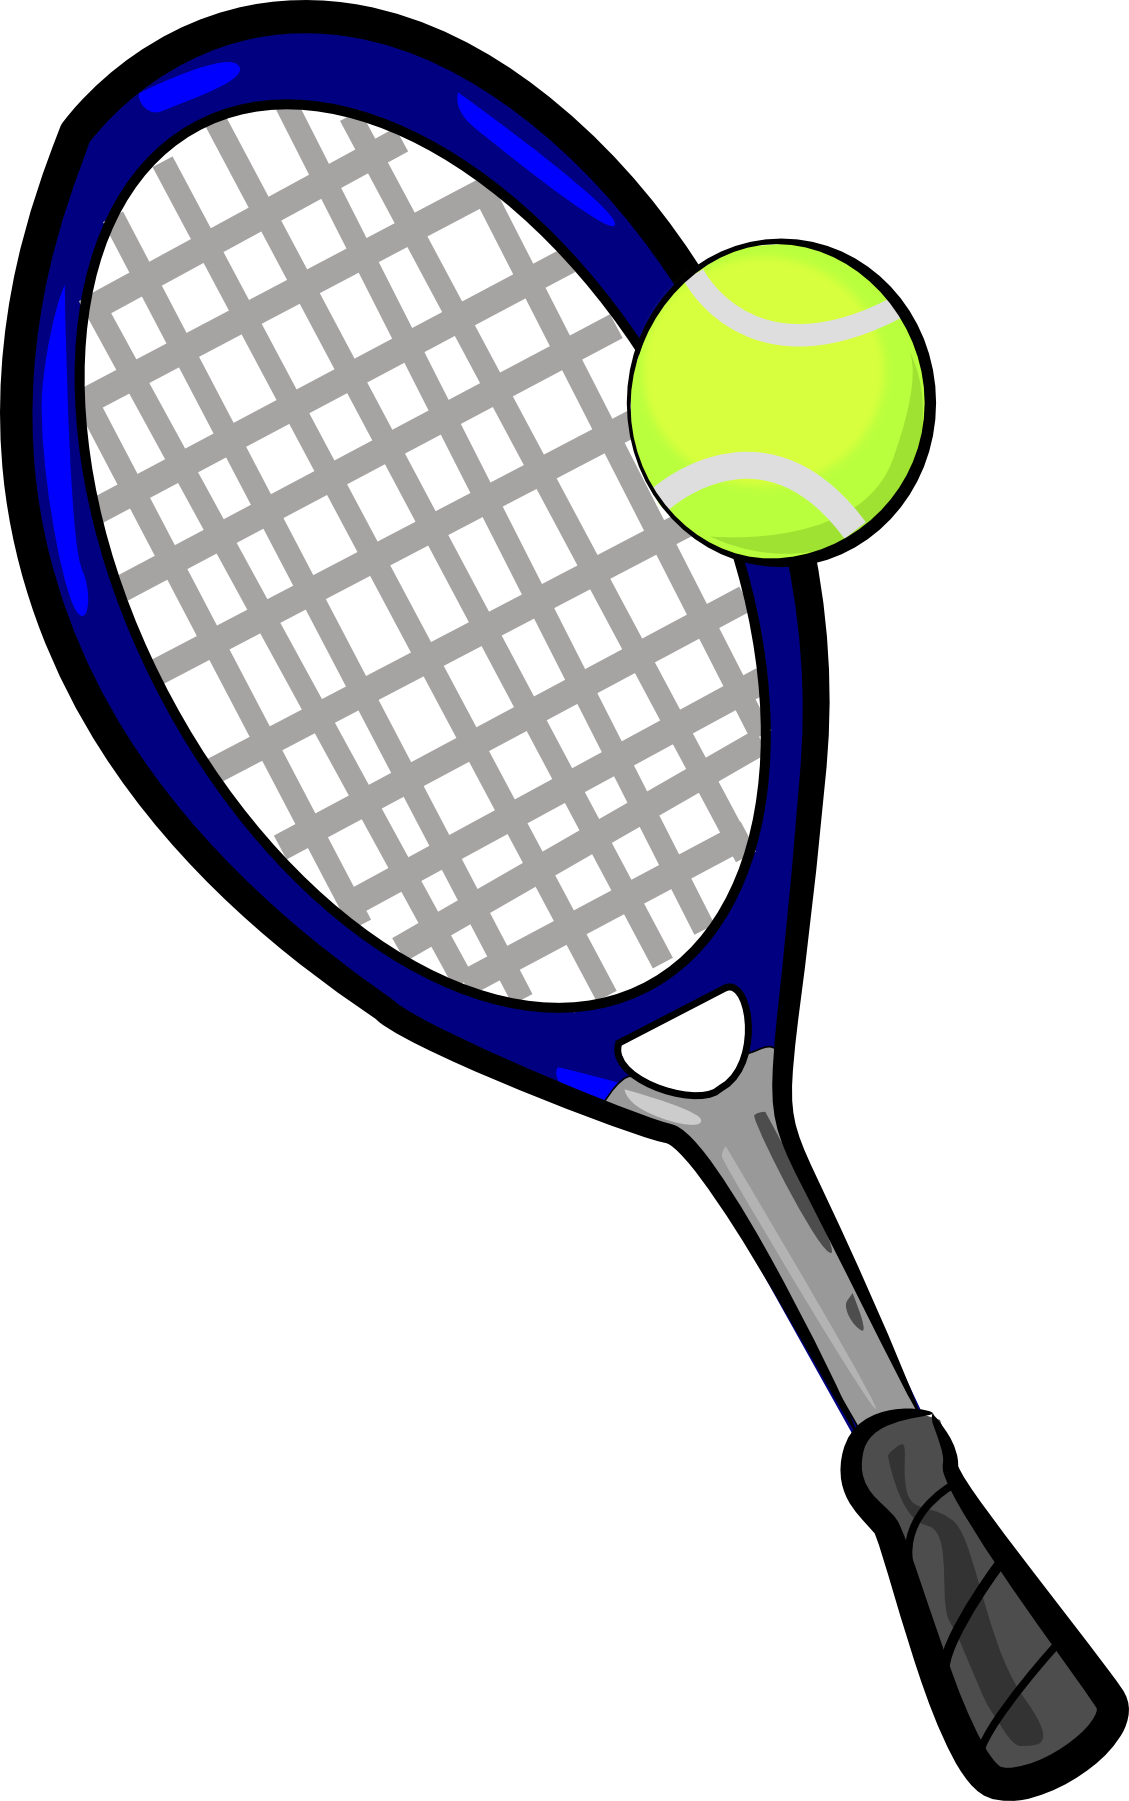 Racket Clipart Tennis Racket And Ball Tennis Racket Art Tennis Racket Craft Tennis Racket Design Tennis Racket Fas Tennis Tennis Racket Art Tennis Racket